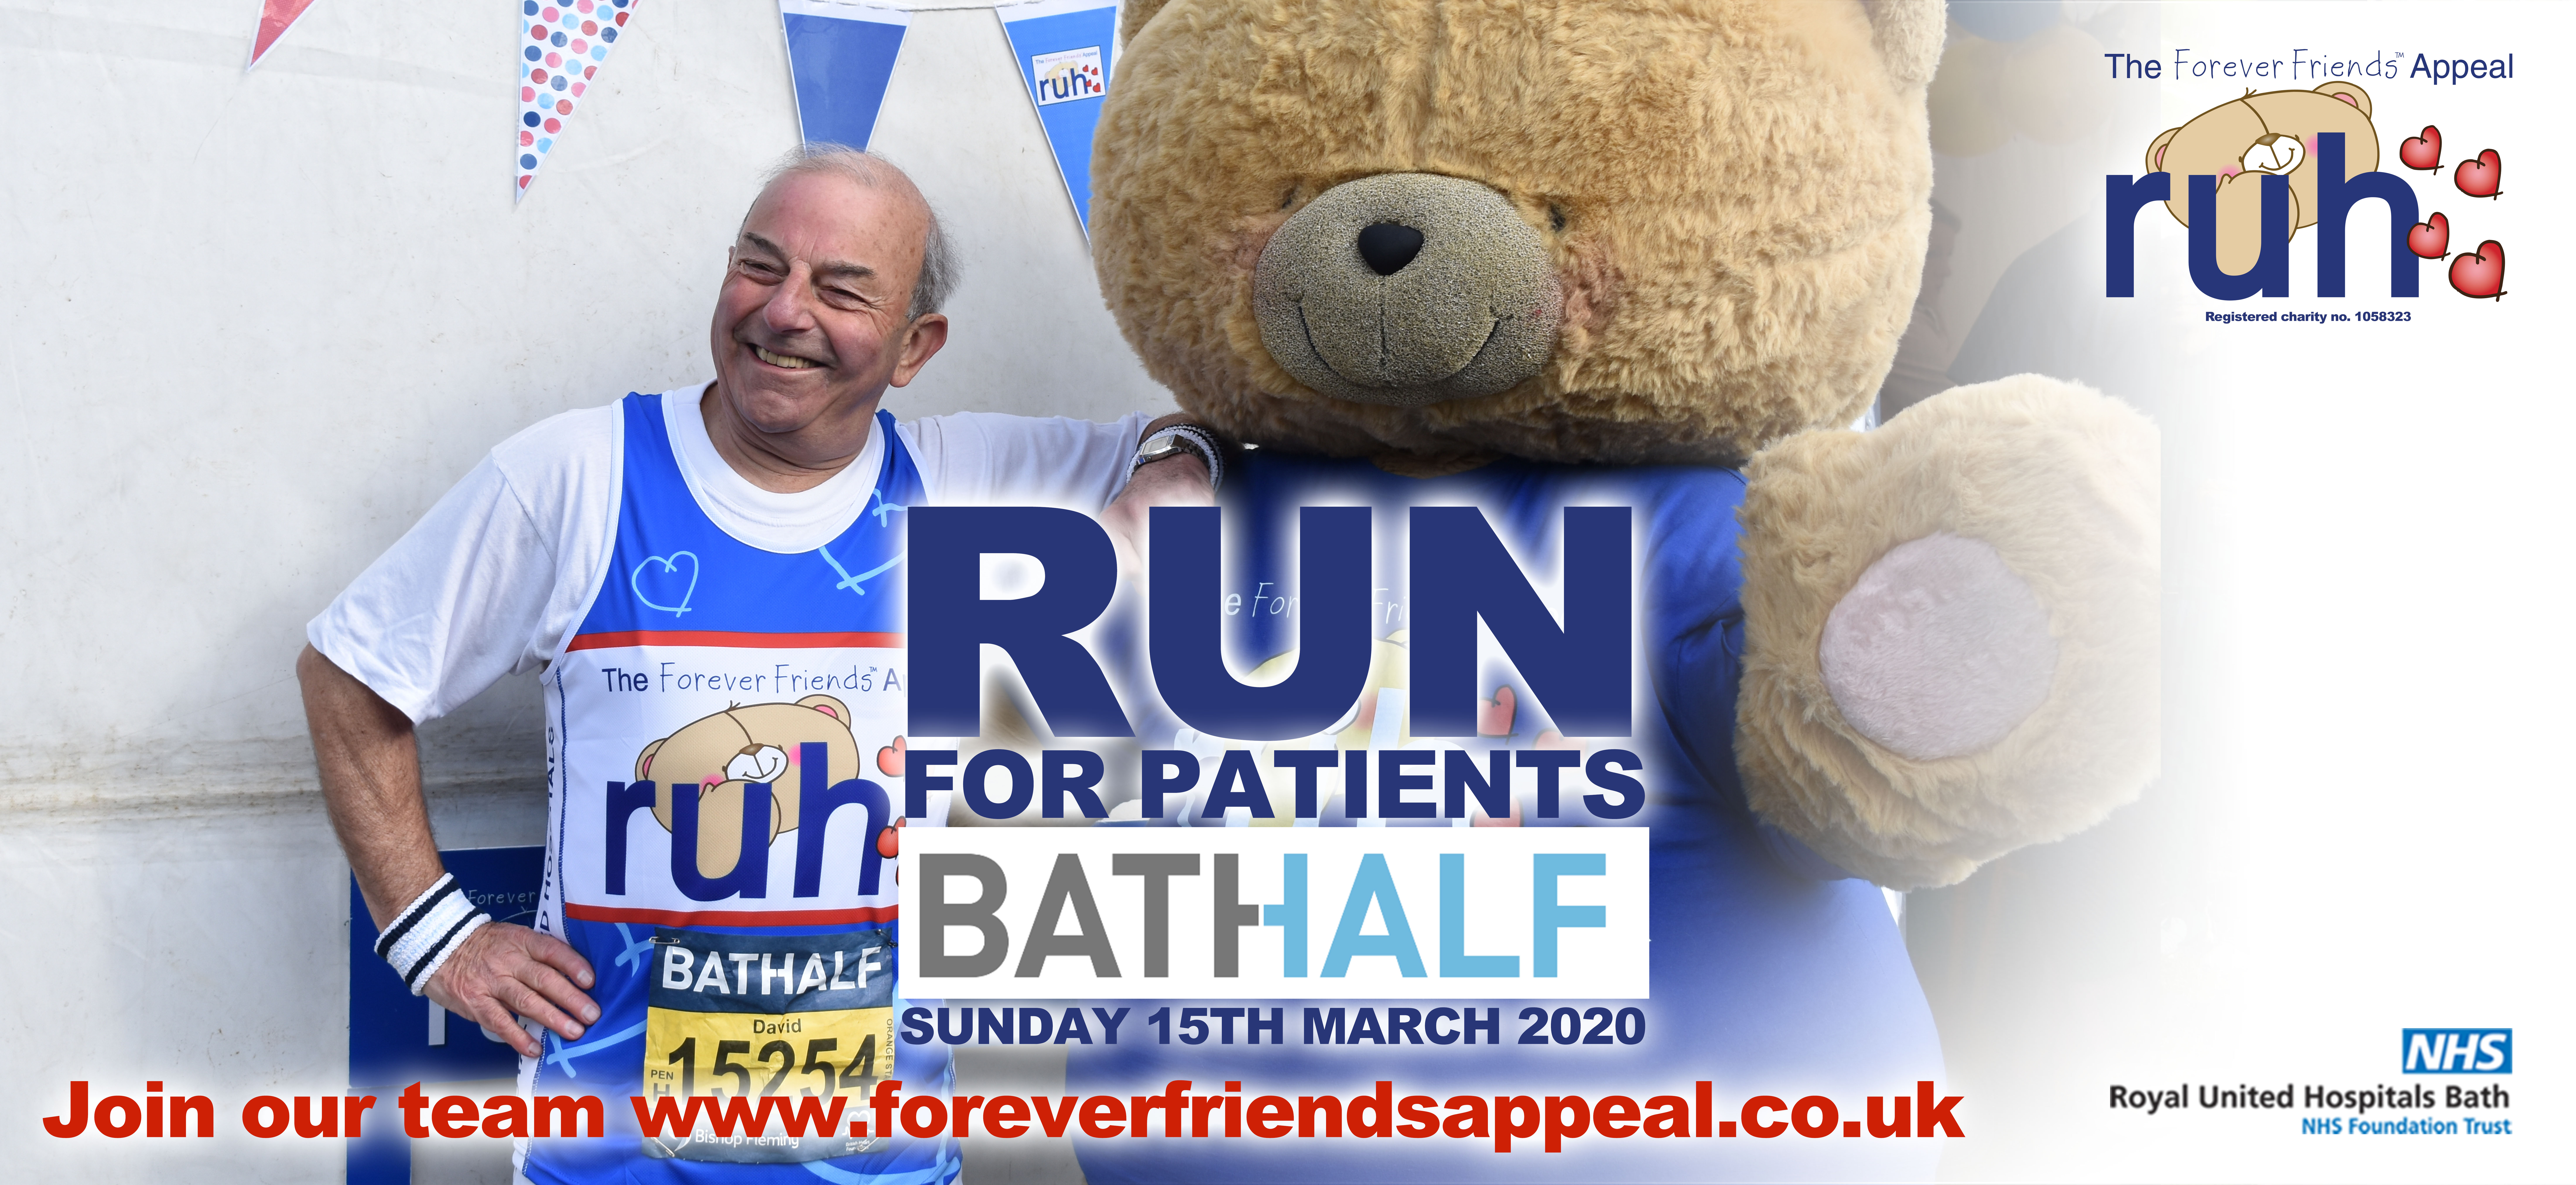 Image for Run the Bath Half for RUH patients